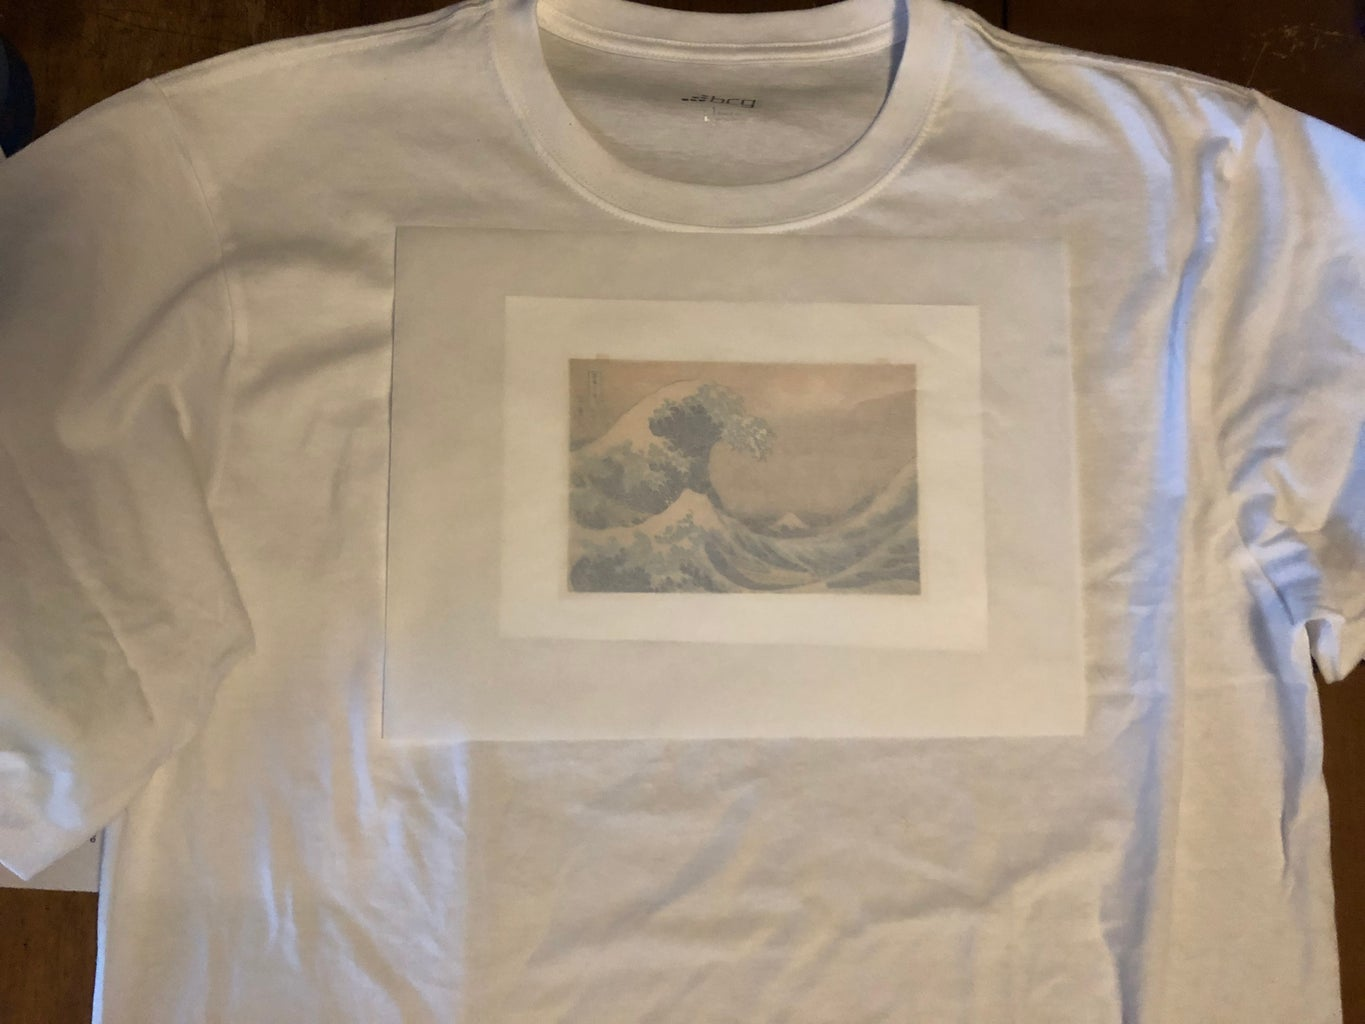 Place Transfer Paper